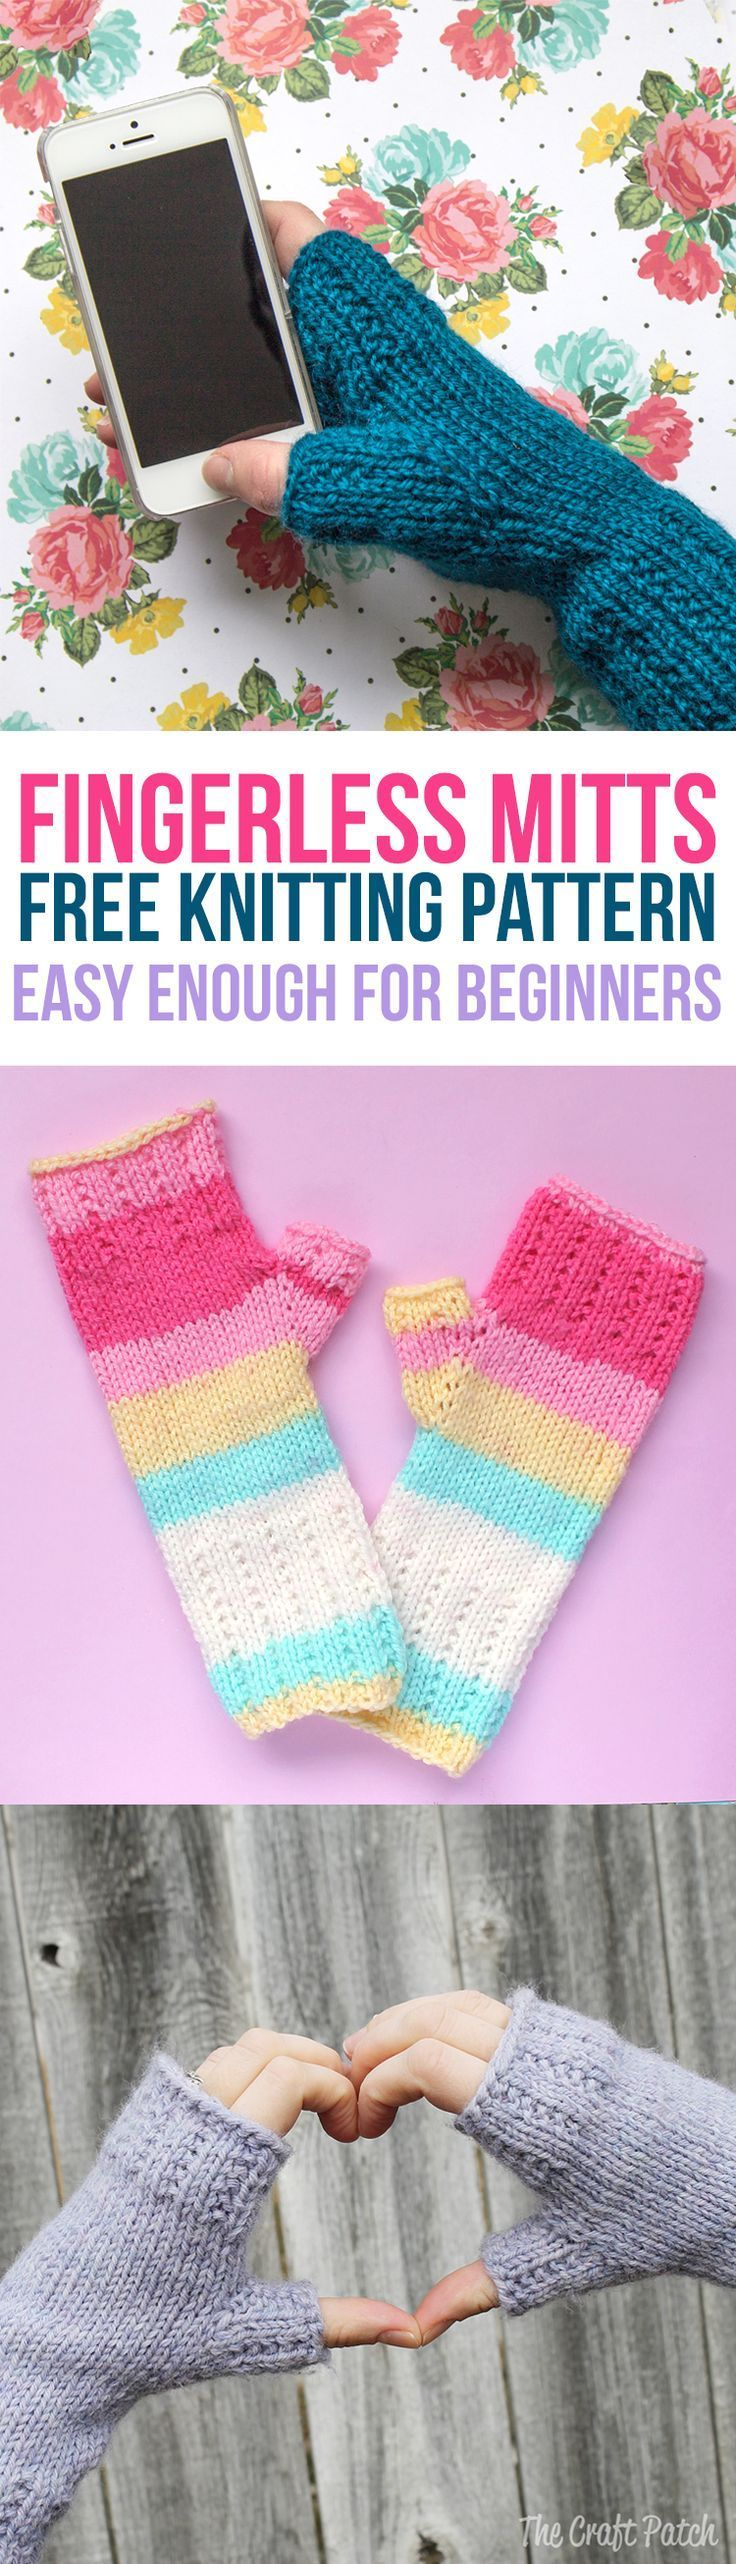 Fingerless Gloves Knitting Pattern Beginner : Best 25+ Fingerless Mitts ideas only on Pinterest Fingerless gloves knittin...